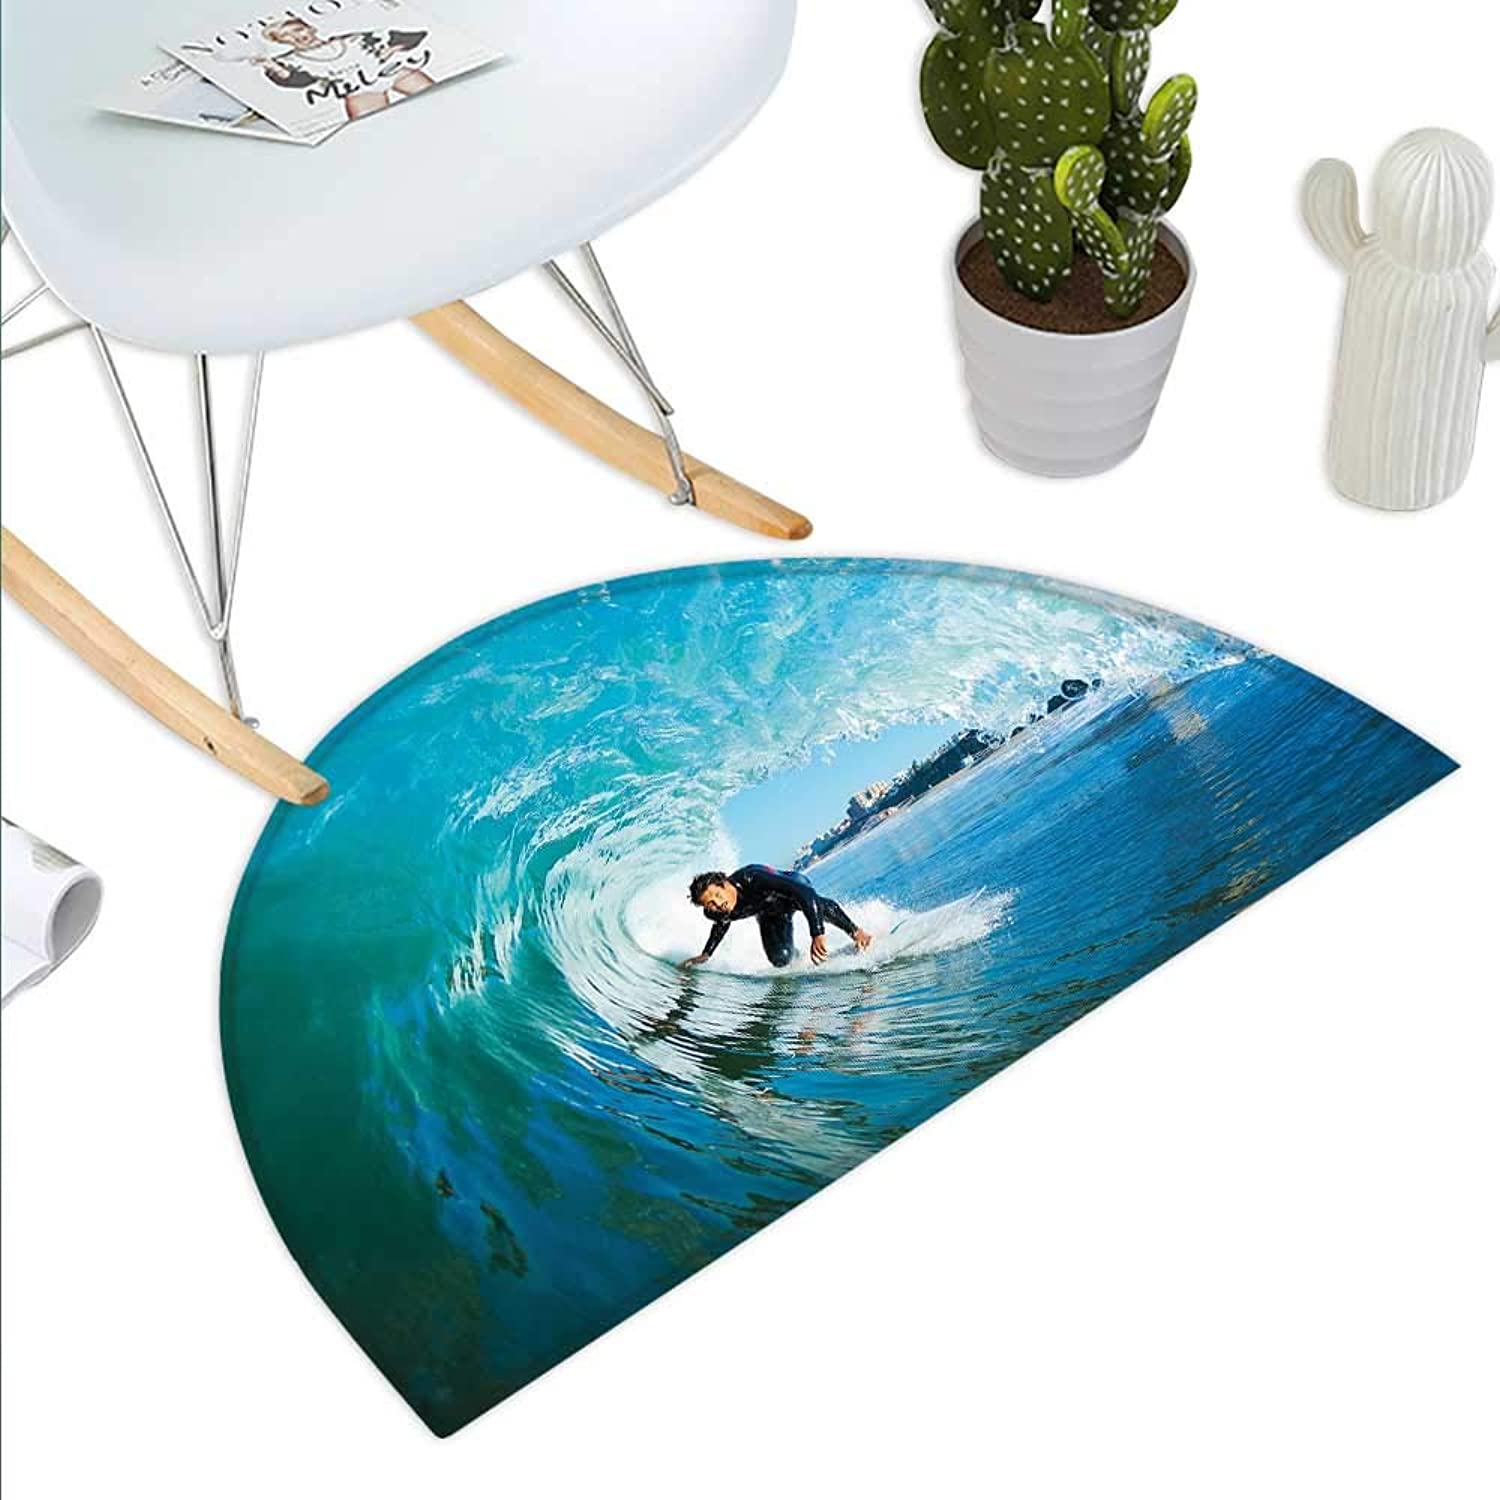 Wave Semicircle Doormat Extreme Sportsman Surfer Inside Barreled Wave Fun Action Holiday Vacation Halfmoon doormats H 39.3  xD 59  Turquoise Light bluee